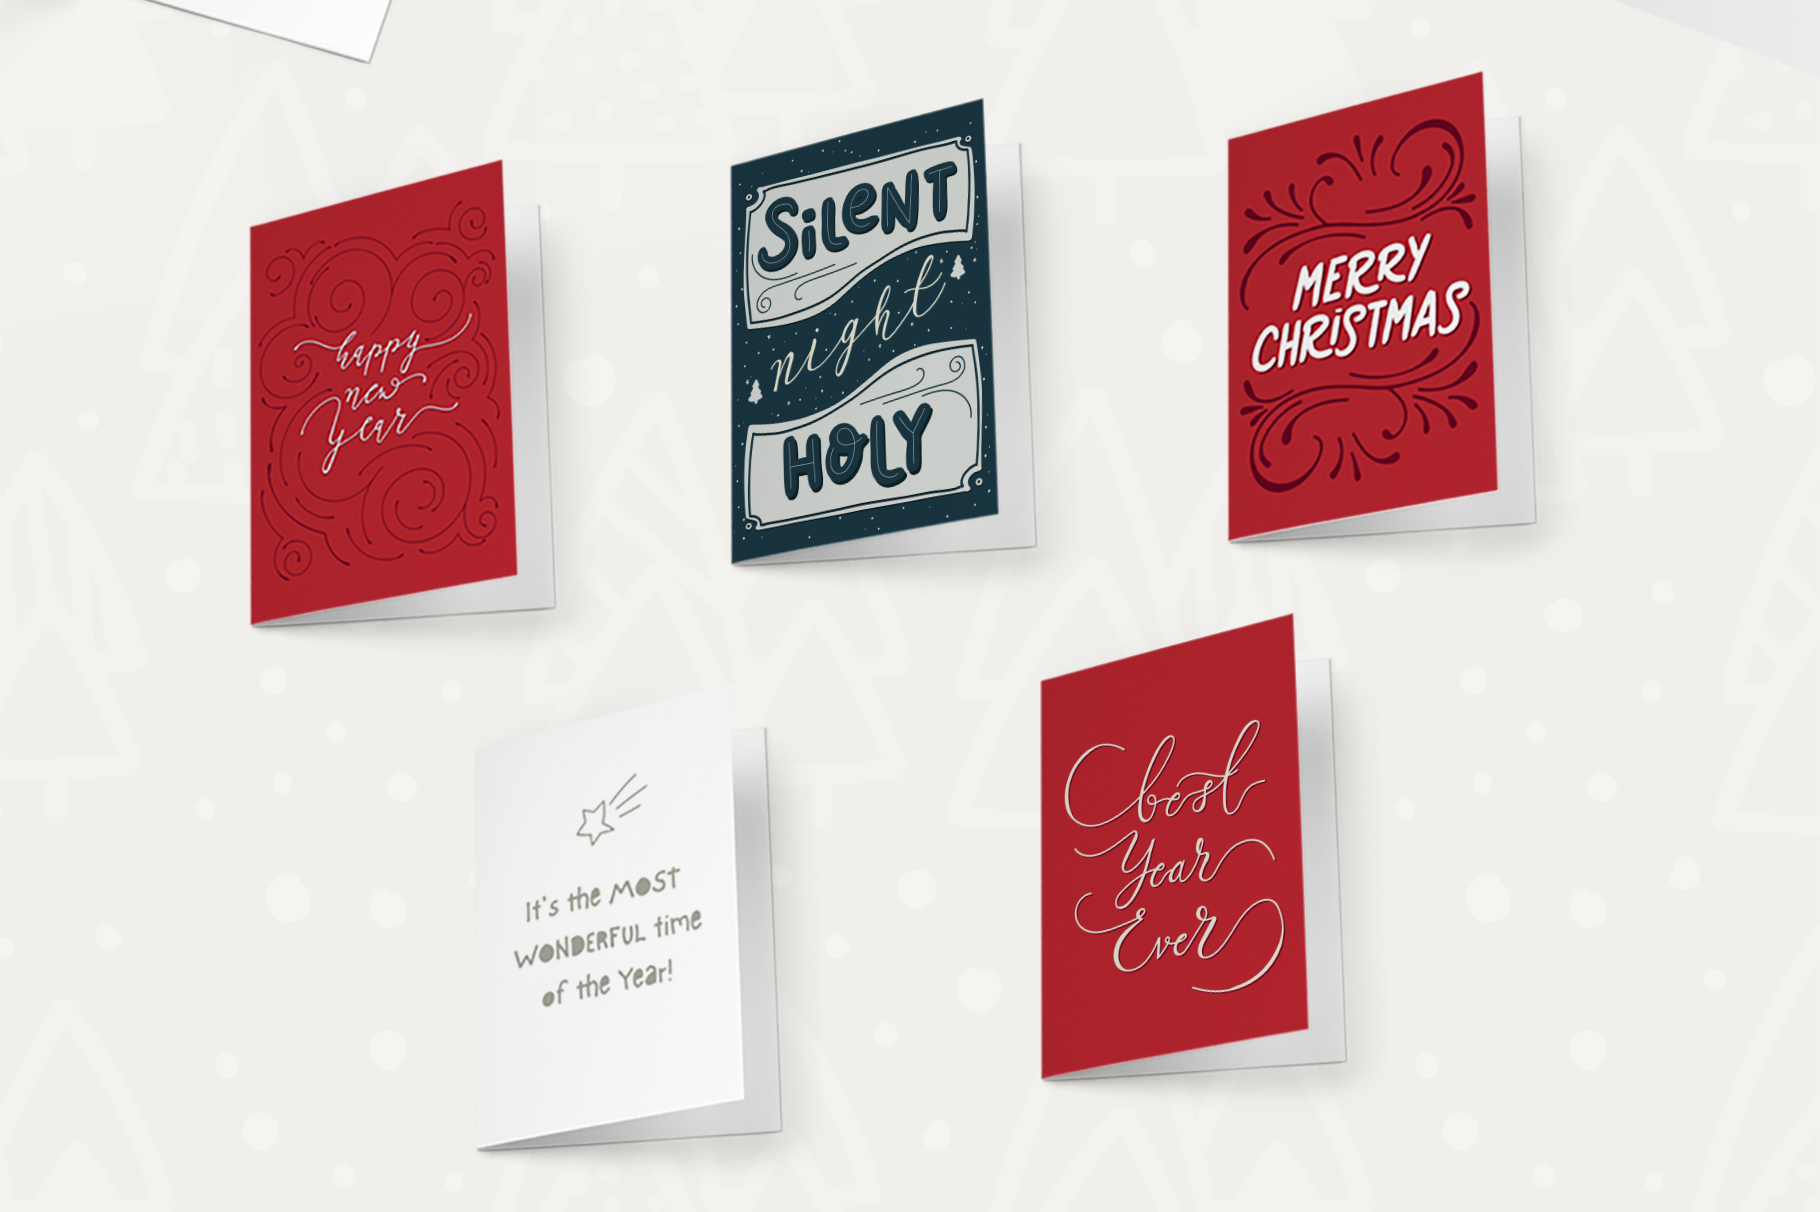 Sweet Christmas Cards & Posters example image 2